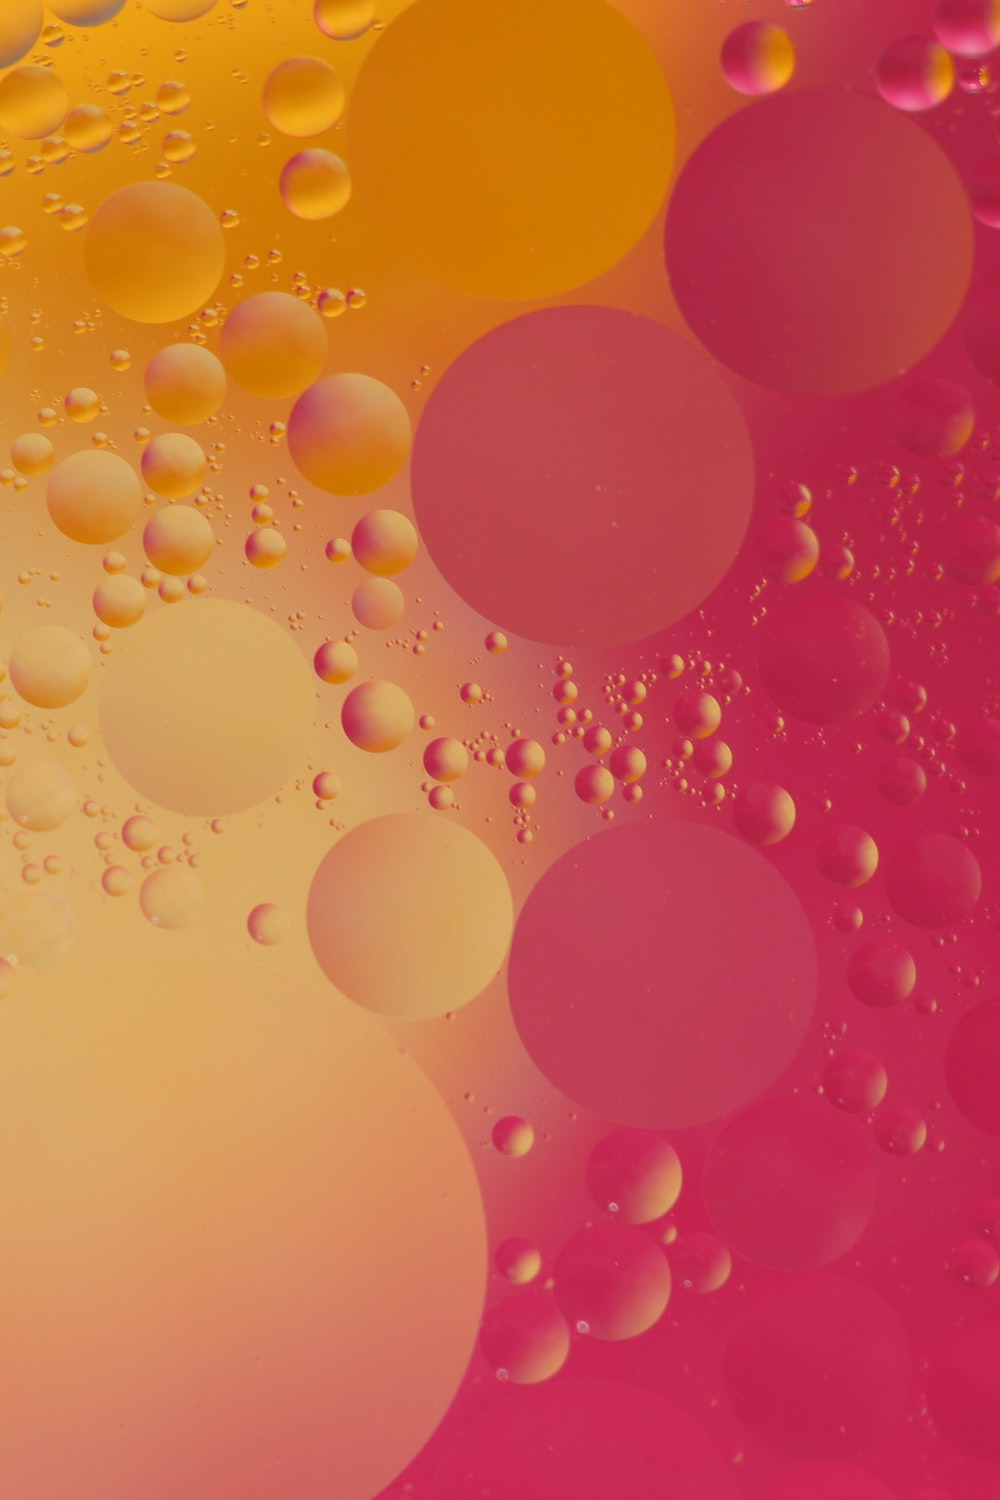 pink and orange bubble digital wallpaper